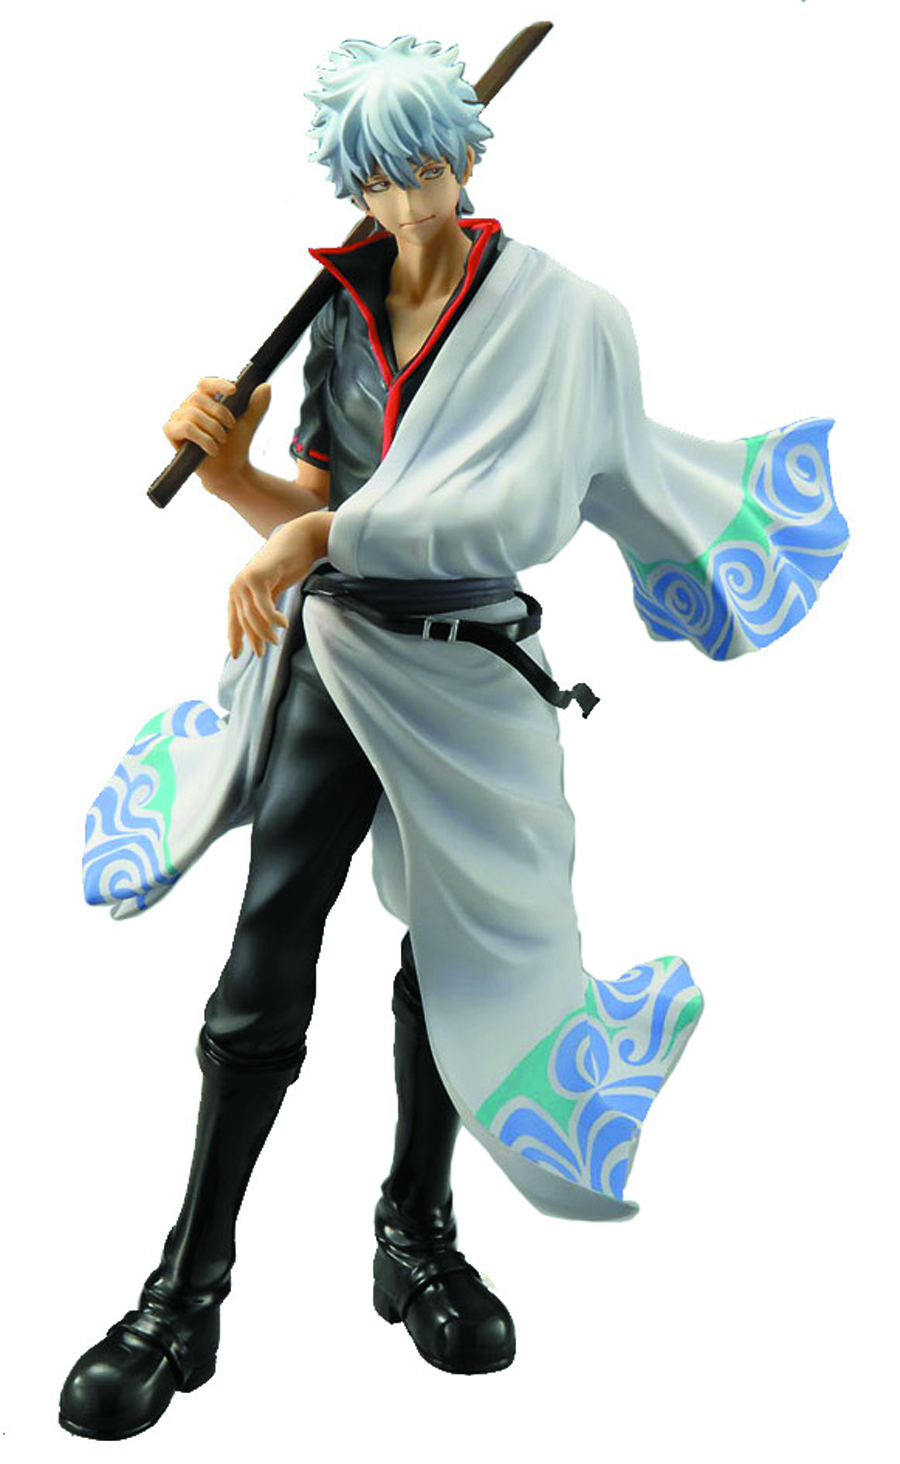 GINTAMA SAKATA GINTOKI GEM PVC FIG